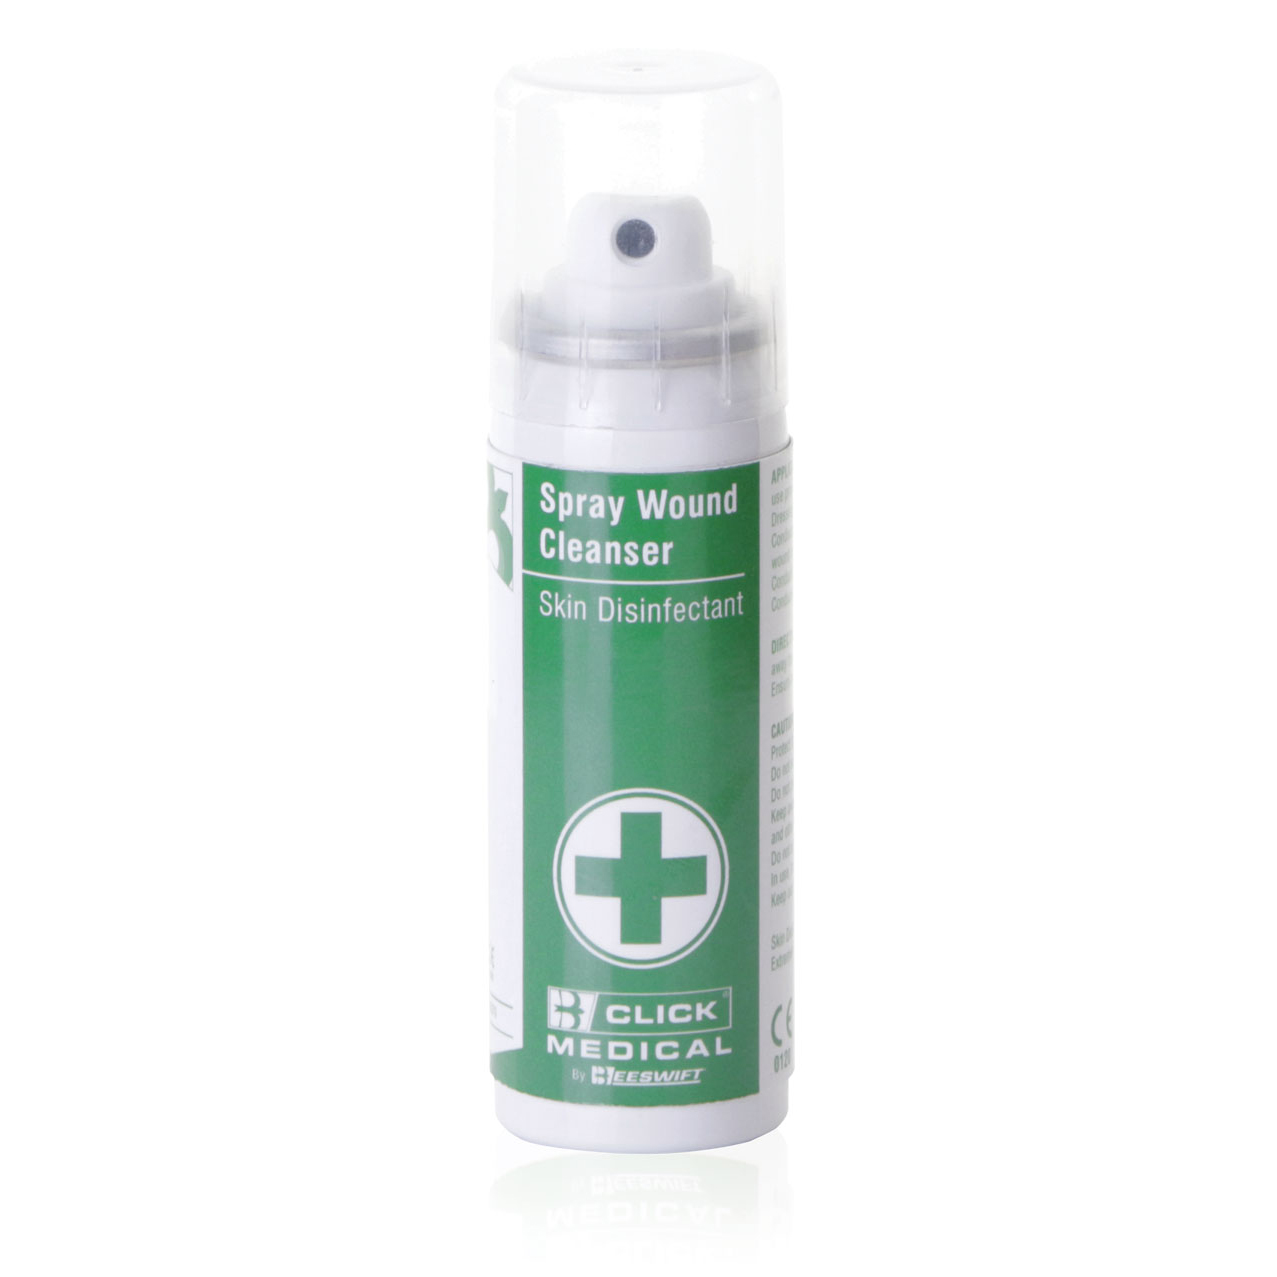 Click Medical Wound Cleanser Skin Disinfectant 70ml Ref CM0379 Up to 3 Day Leadtime